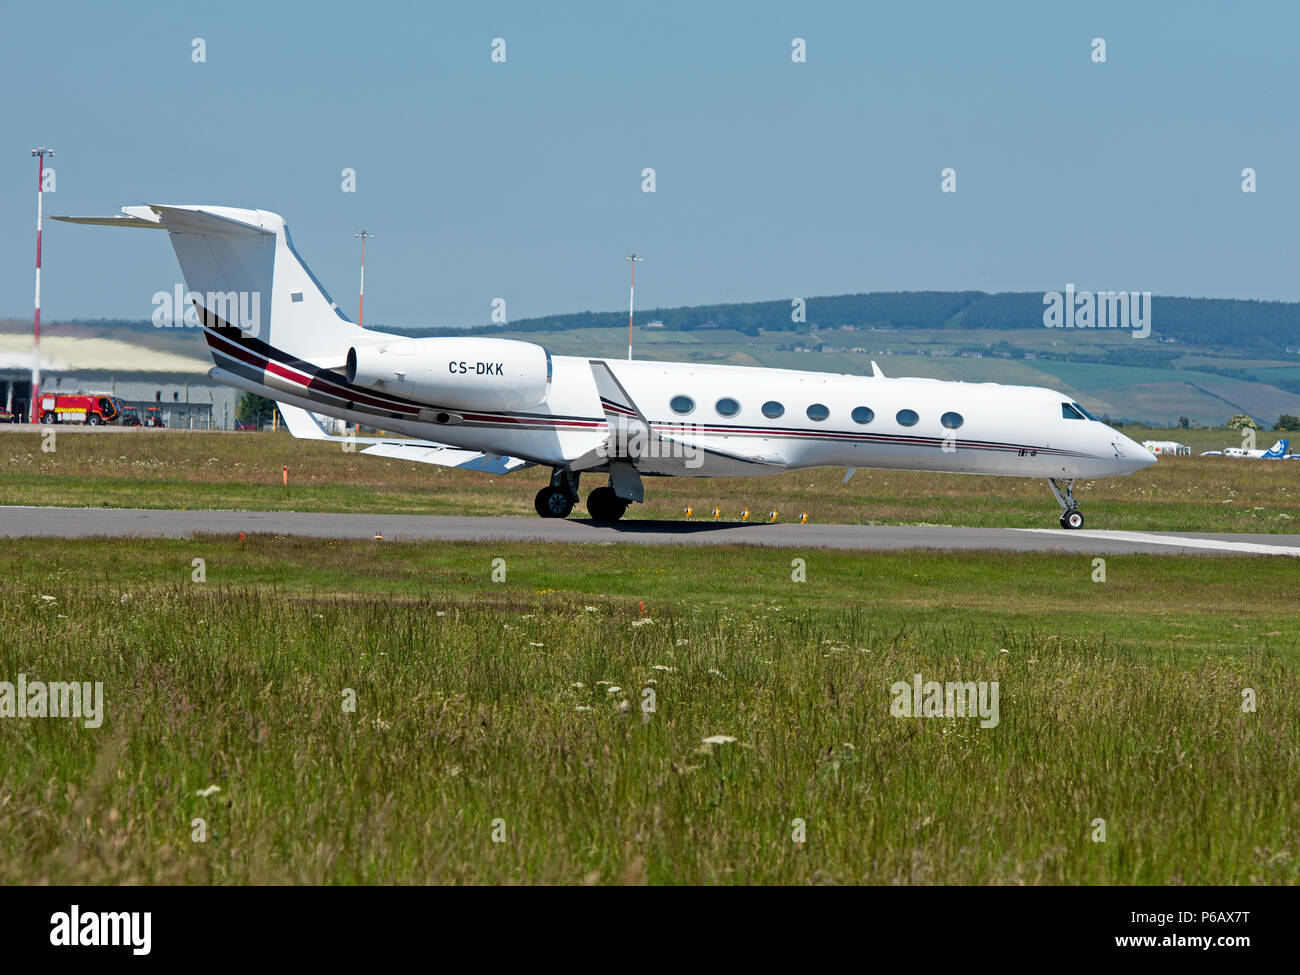 Gulfstream 550 twin engined Business Jet owned by Net Jets Europe Approaching/ Landing at Inverness Dalcross Airport in the Scottish Highlands. - Stock Image